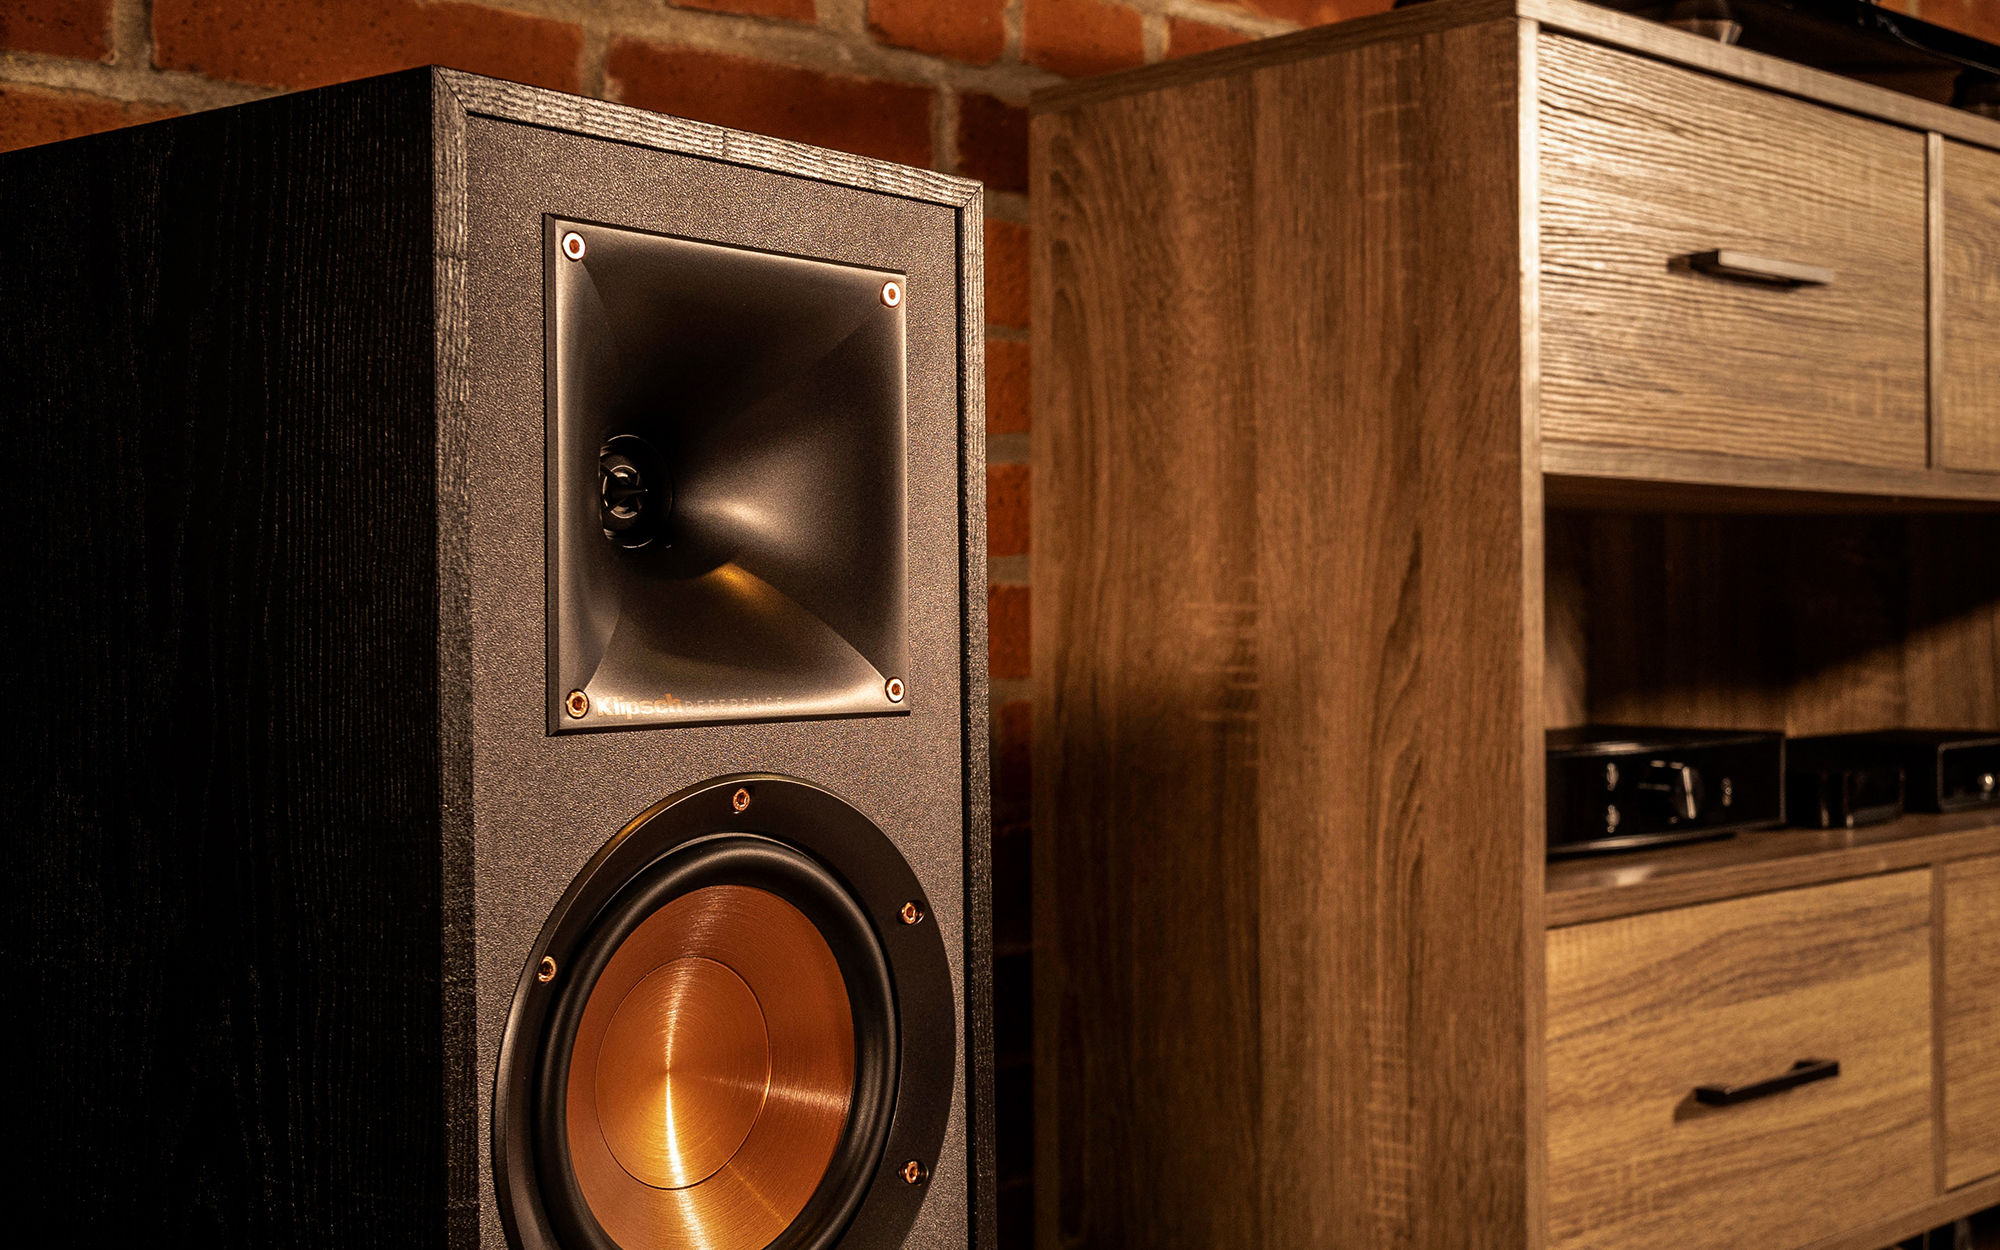 Bookshelf speaker up close